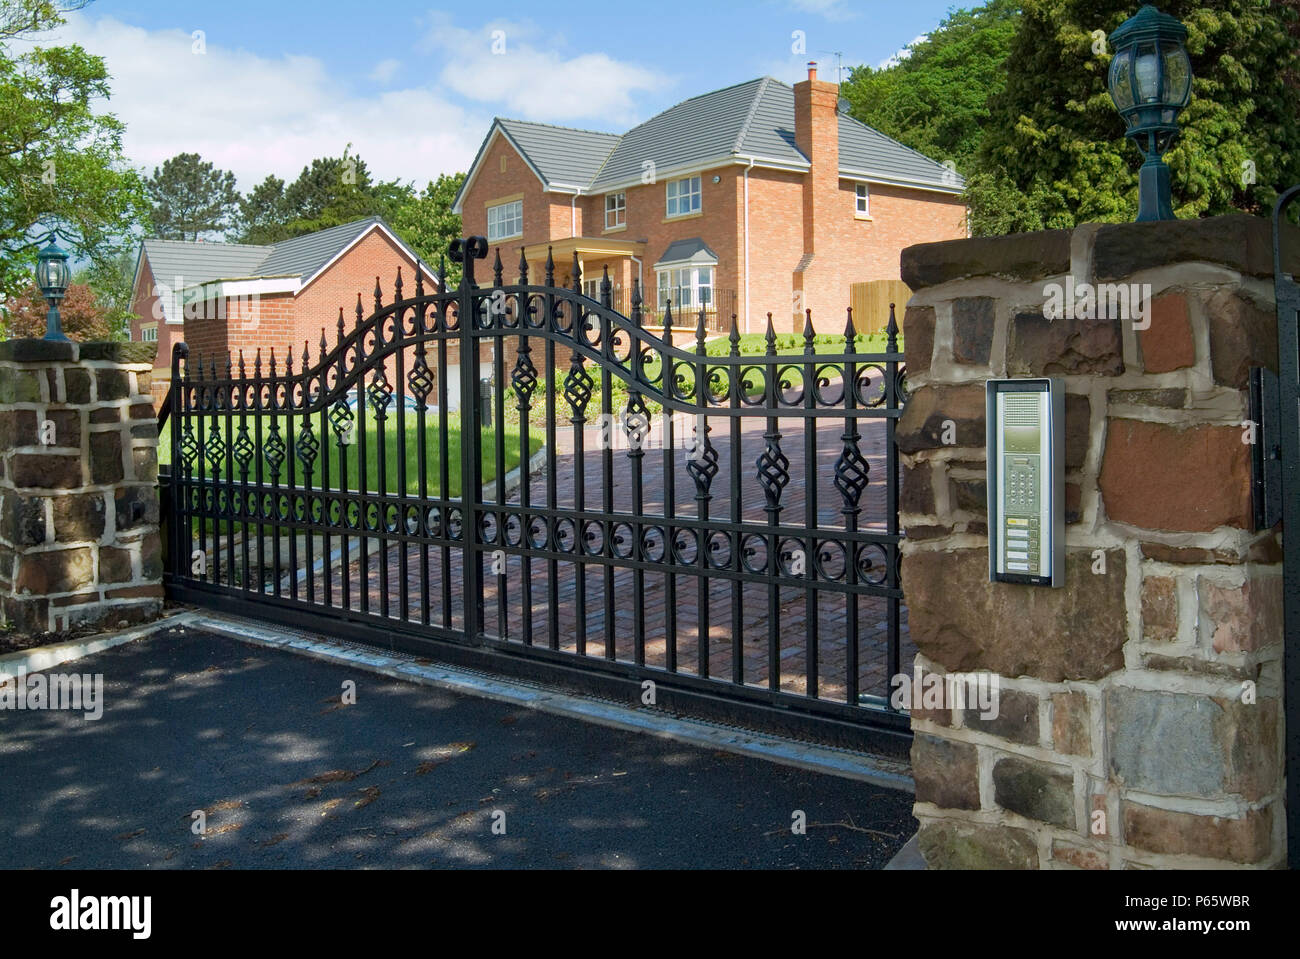 Security entrance electrically operated gate with inercom on new and prestigious housing development on Keckwick Hill, Daresbury near Warrington Chesh - Stock Image